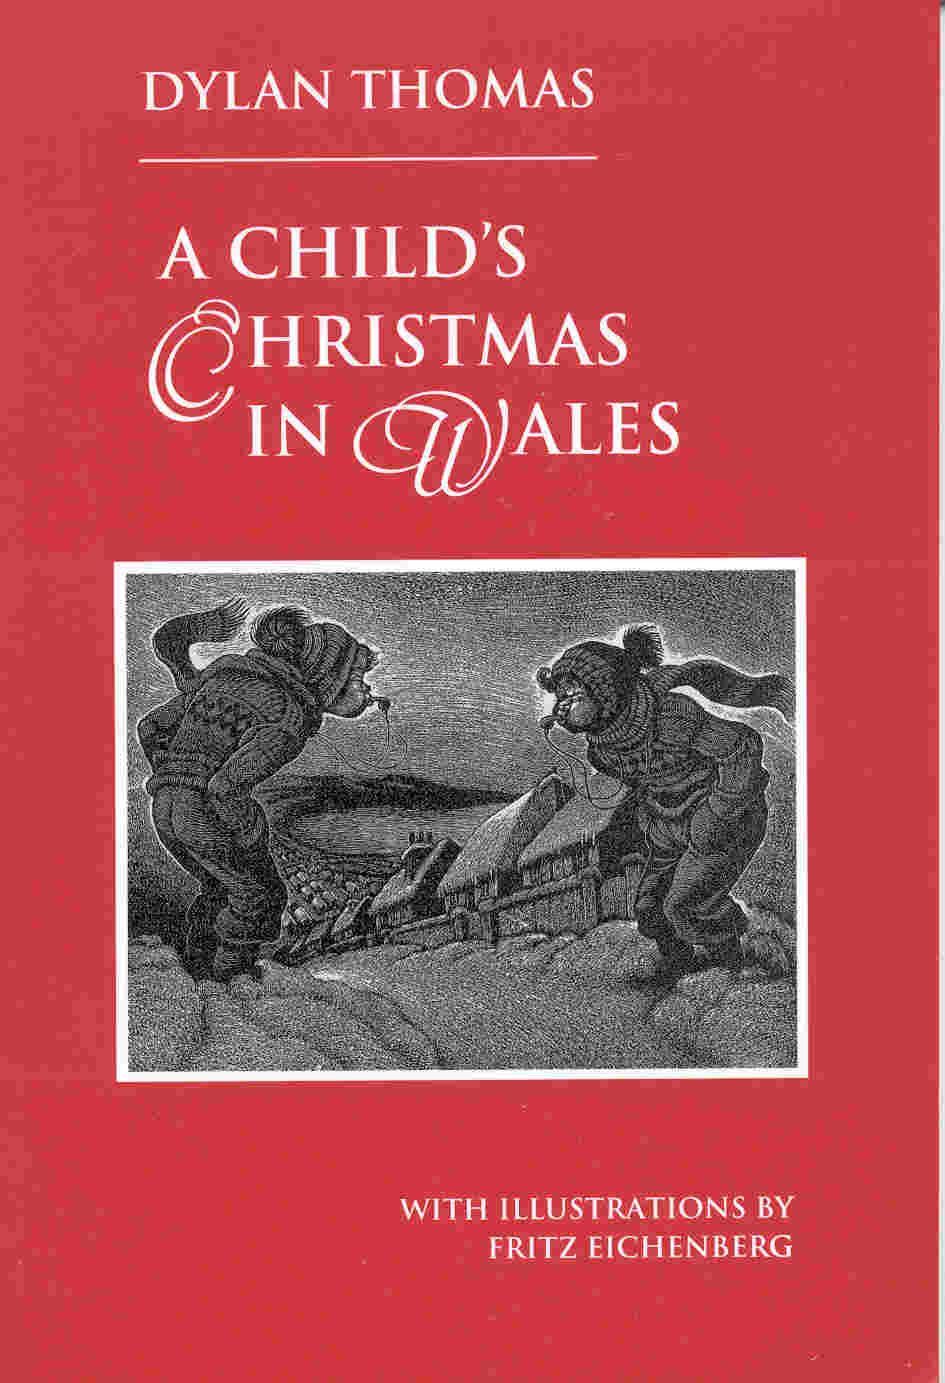 A Childs Christmas In Wales.Bookfoolery Christmas Stories In October A